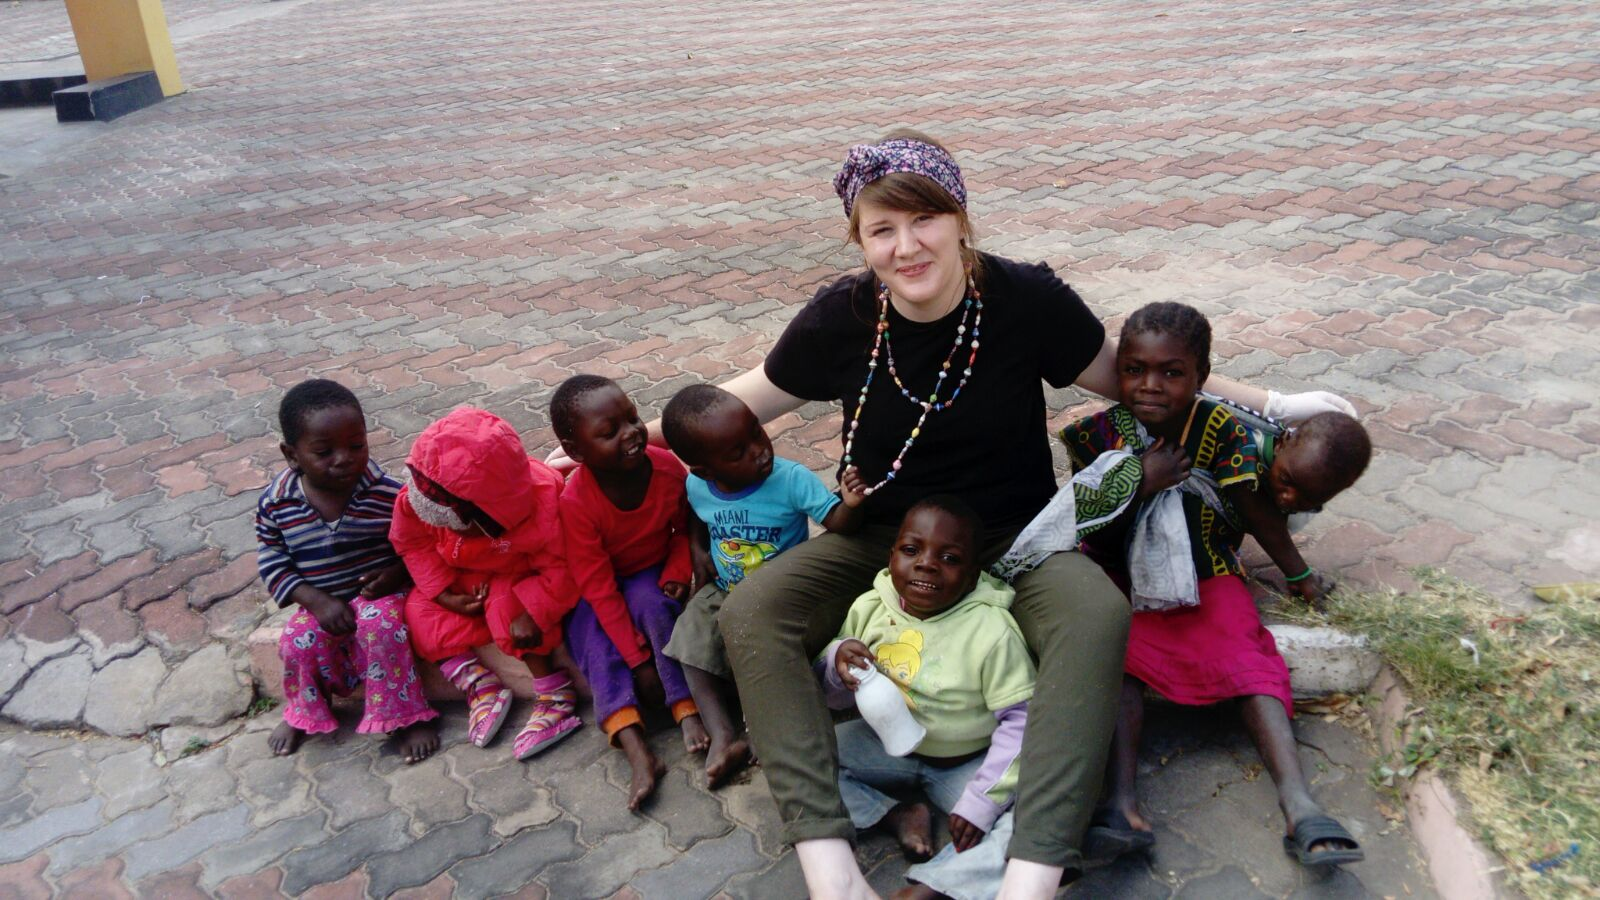 Emma Edgeworth – Zambia